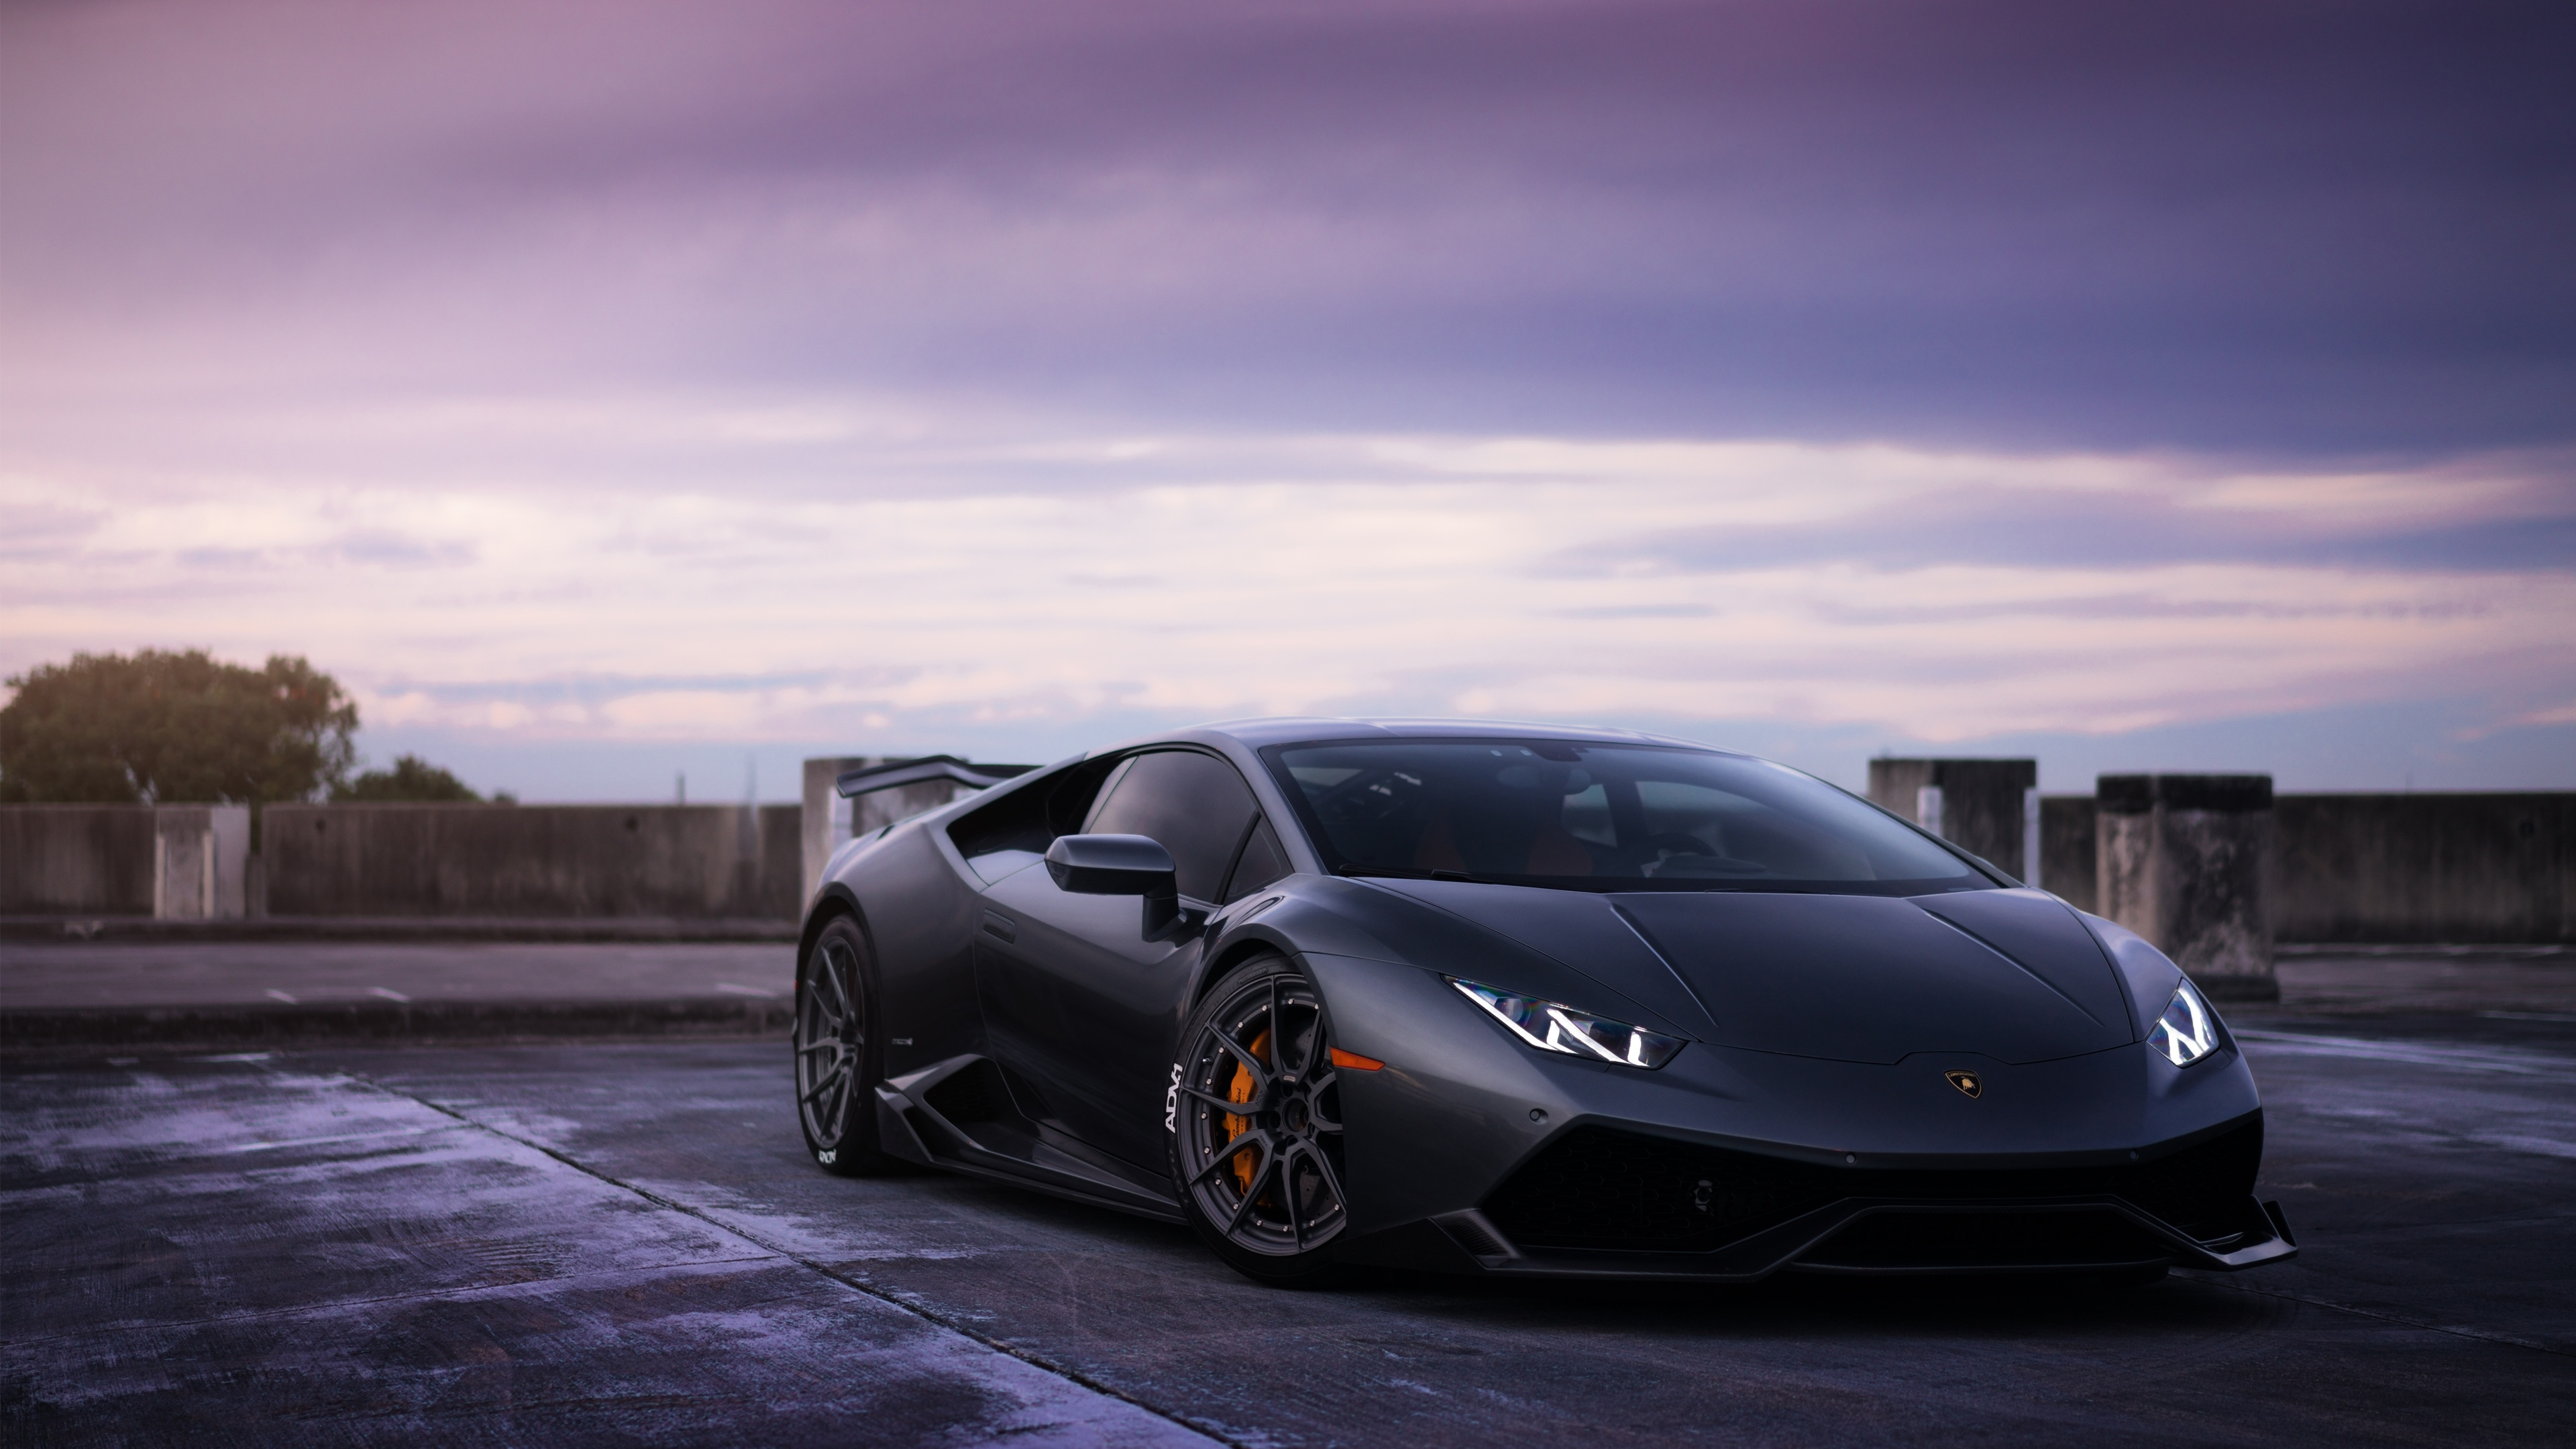 WJ971 High Definition Lamborghini Wallpaper HD 3840x2160